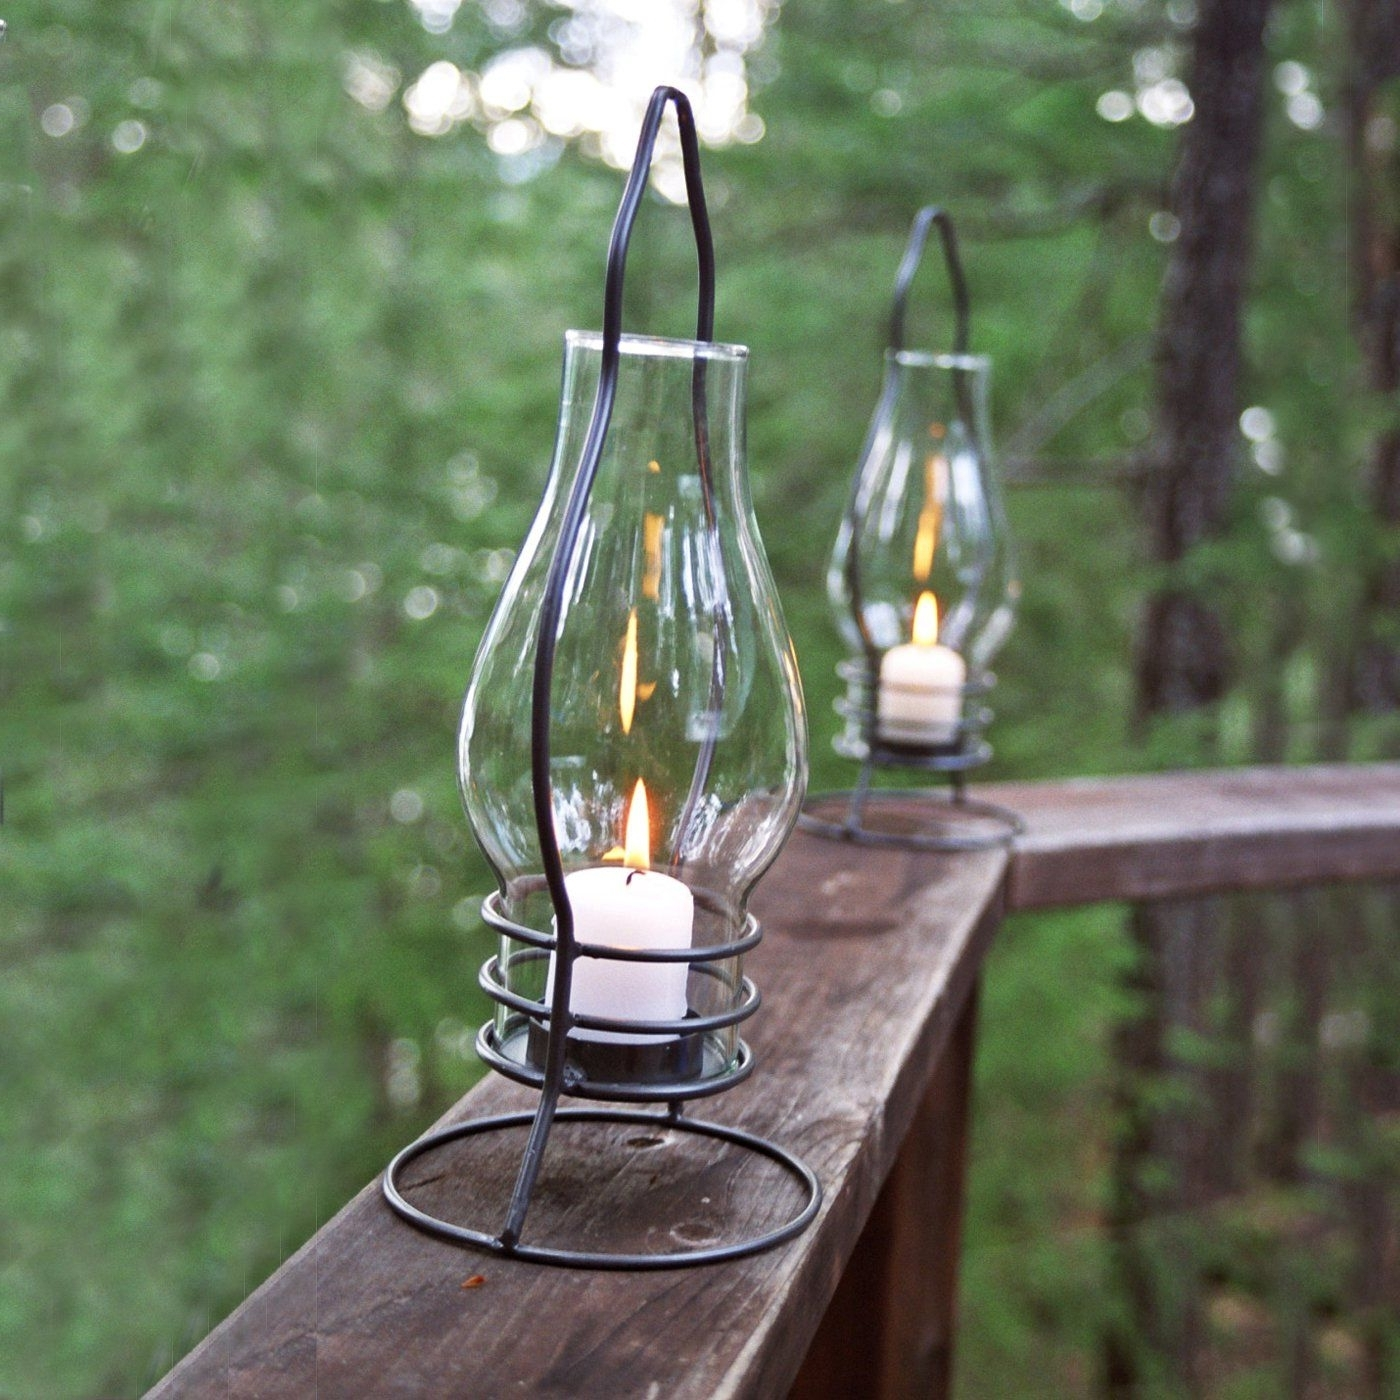 Pangaea Home And Garden Fm C2350 Iron Outdoor Table Lantern #themine Regarding 2019 Outdoor Table Lanterns (View 11 of 20)